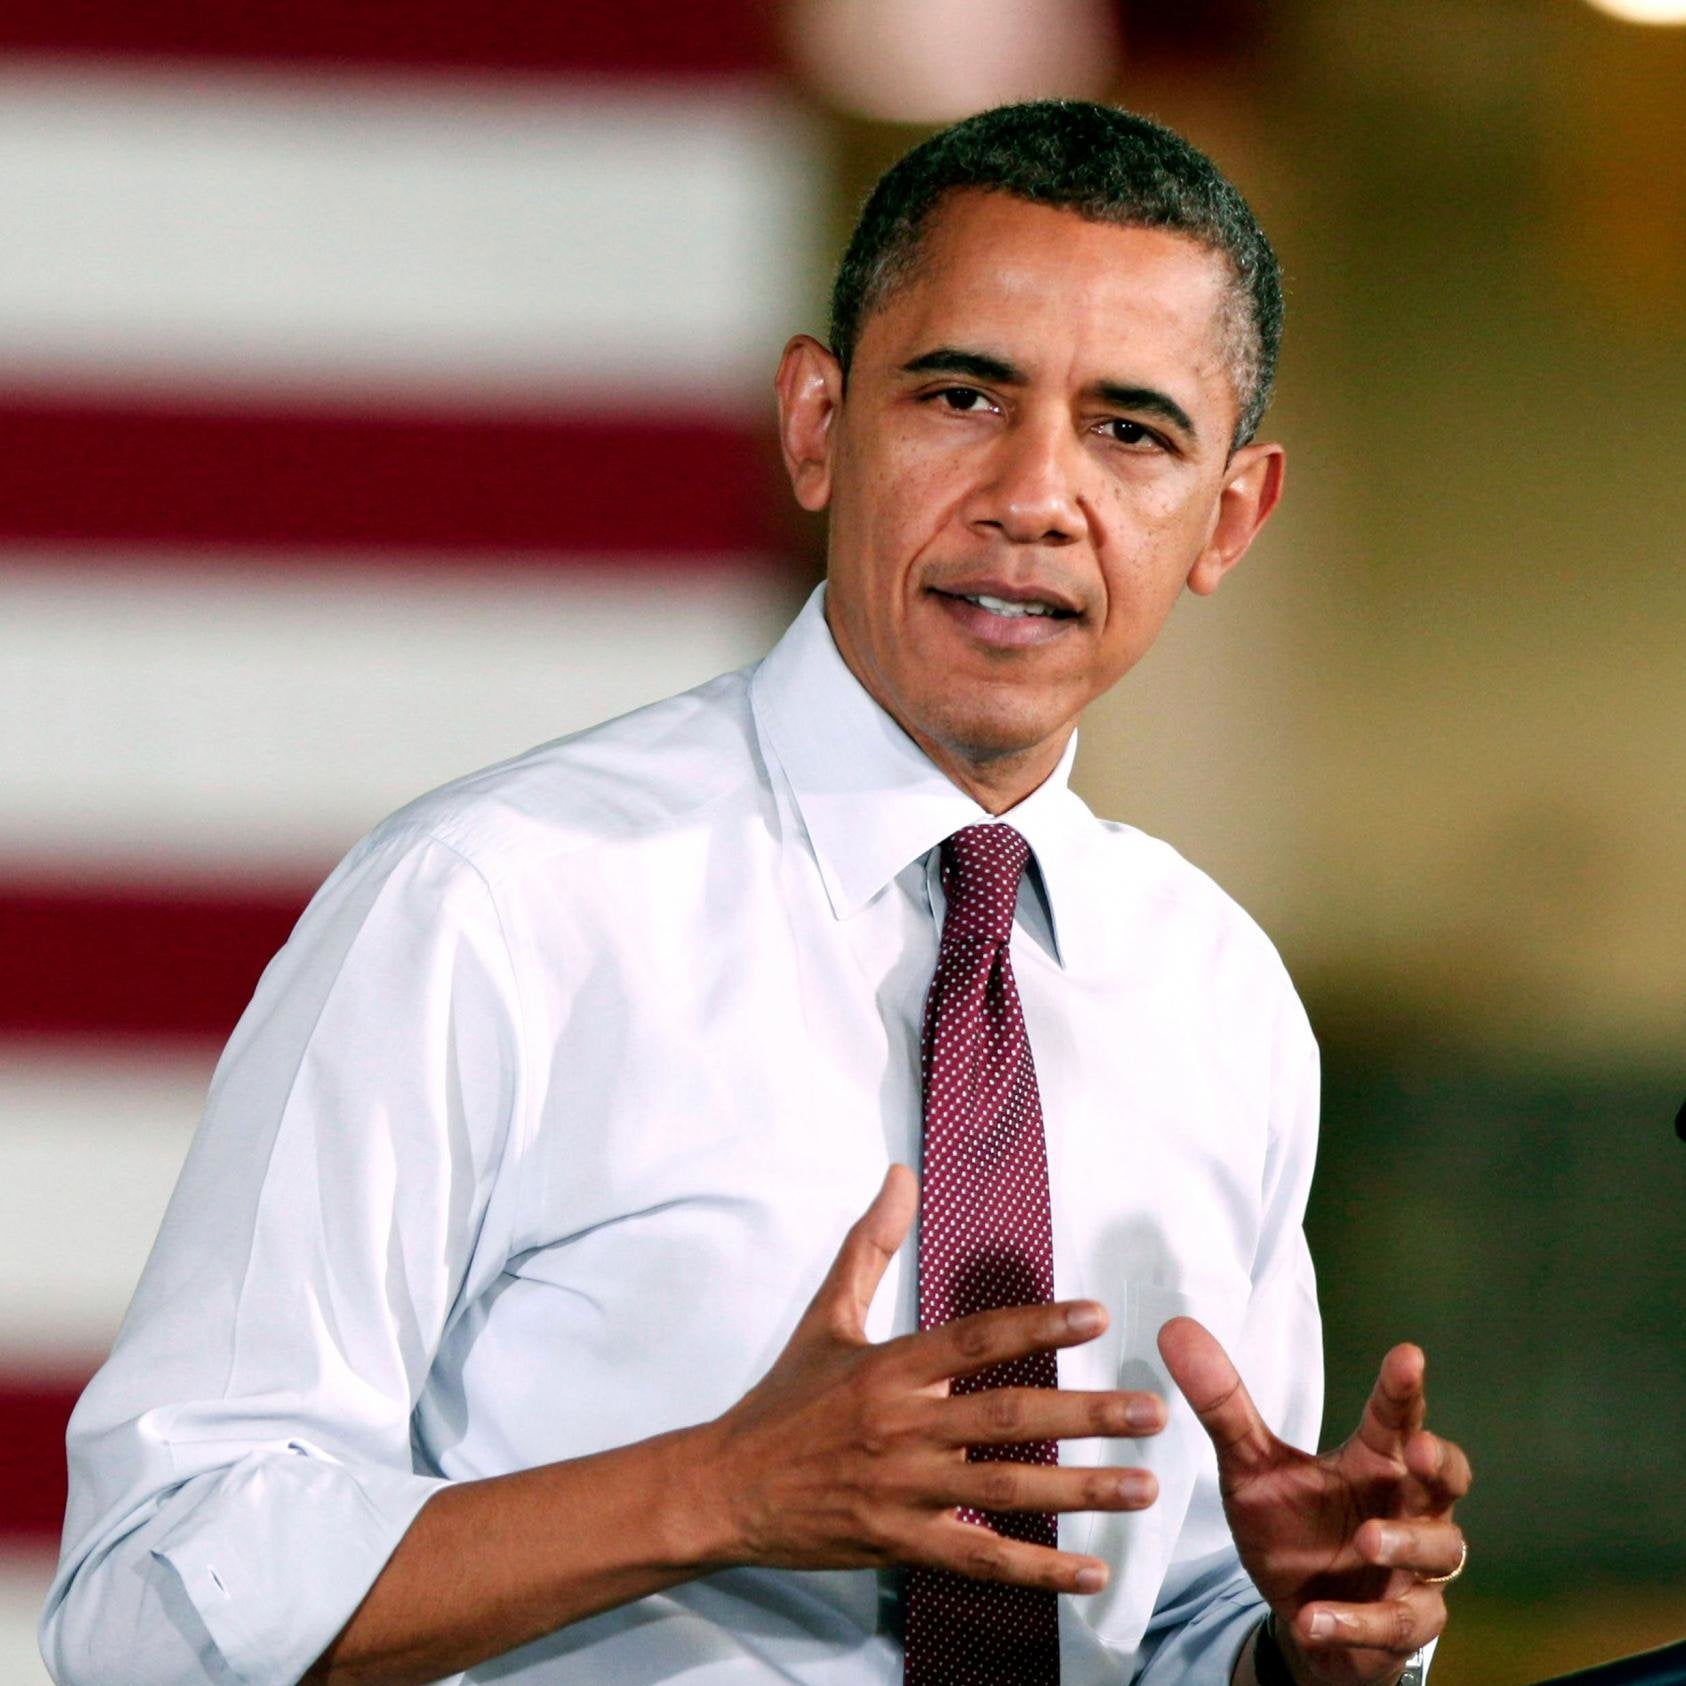 President Obama to Deliver Morehouse Graduation Speech